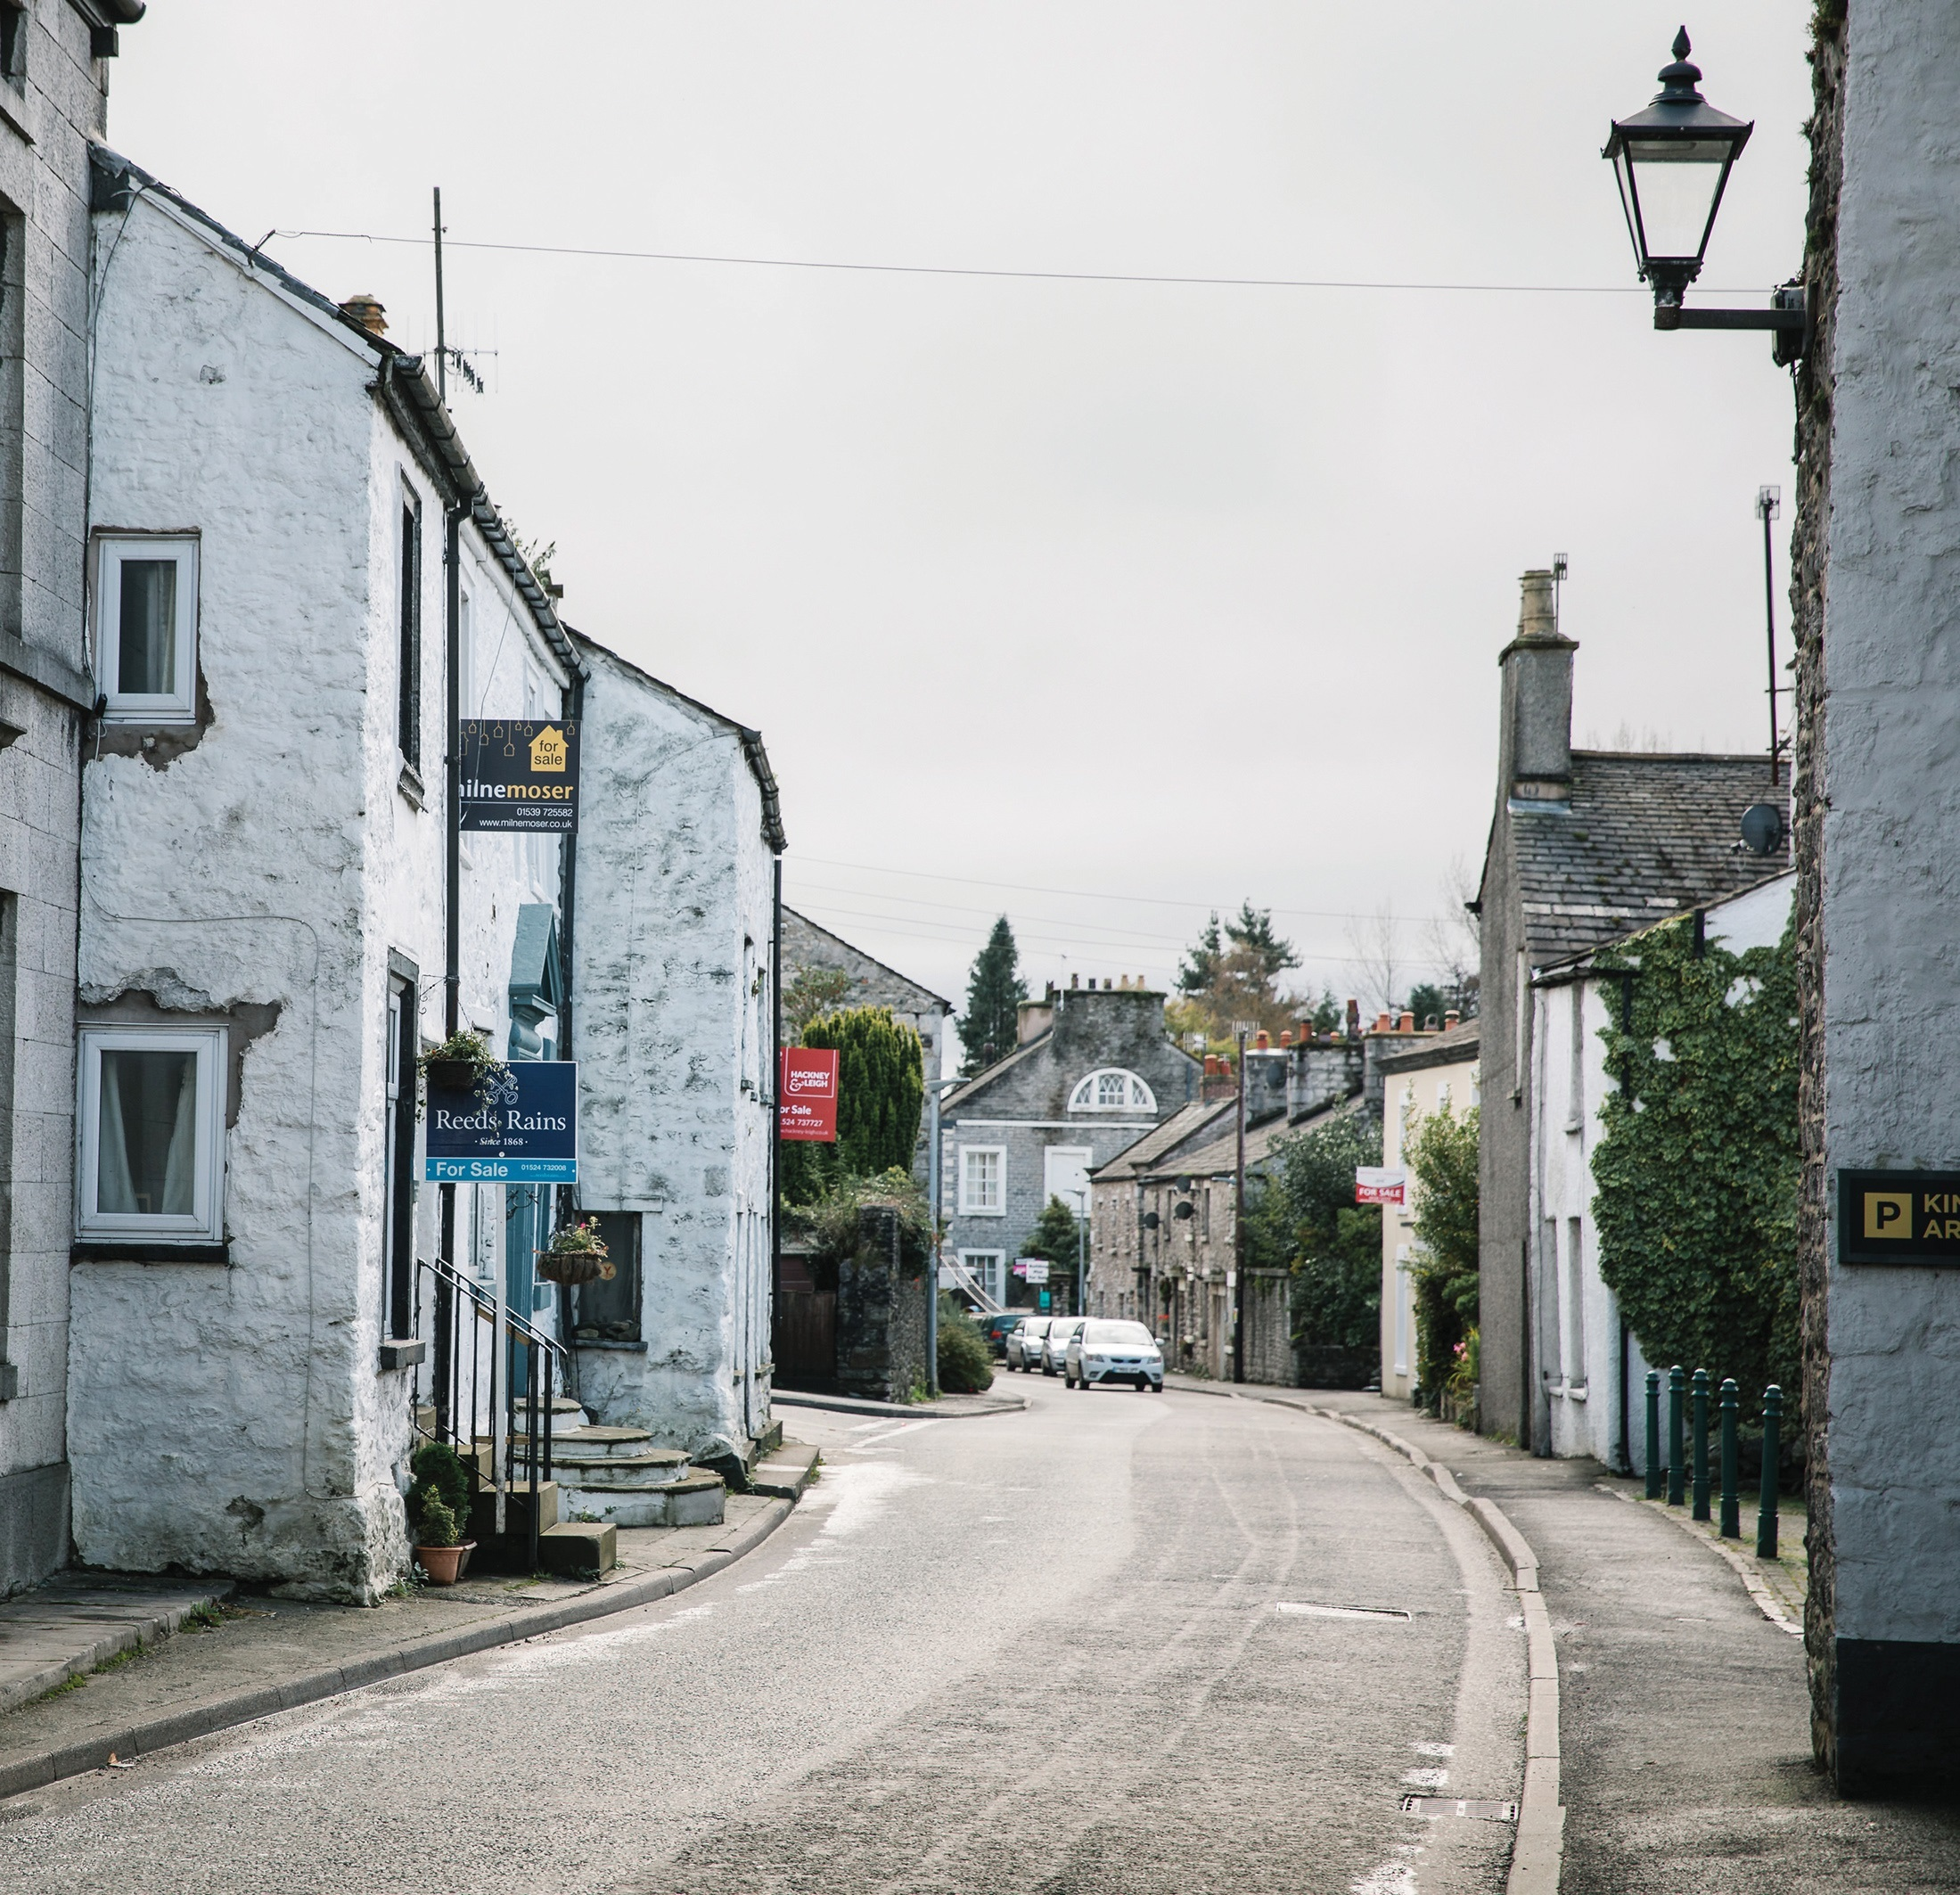 distorsionar Ciudad Diploma  First stage of project to restore historic Burton-in-Kendal buildings has  begun | The Westmorland Gazette